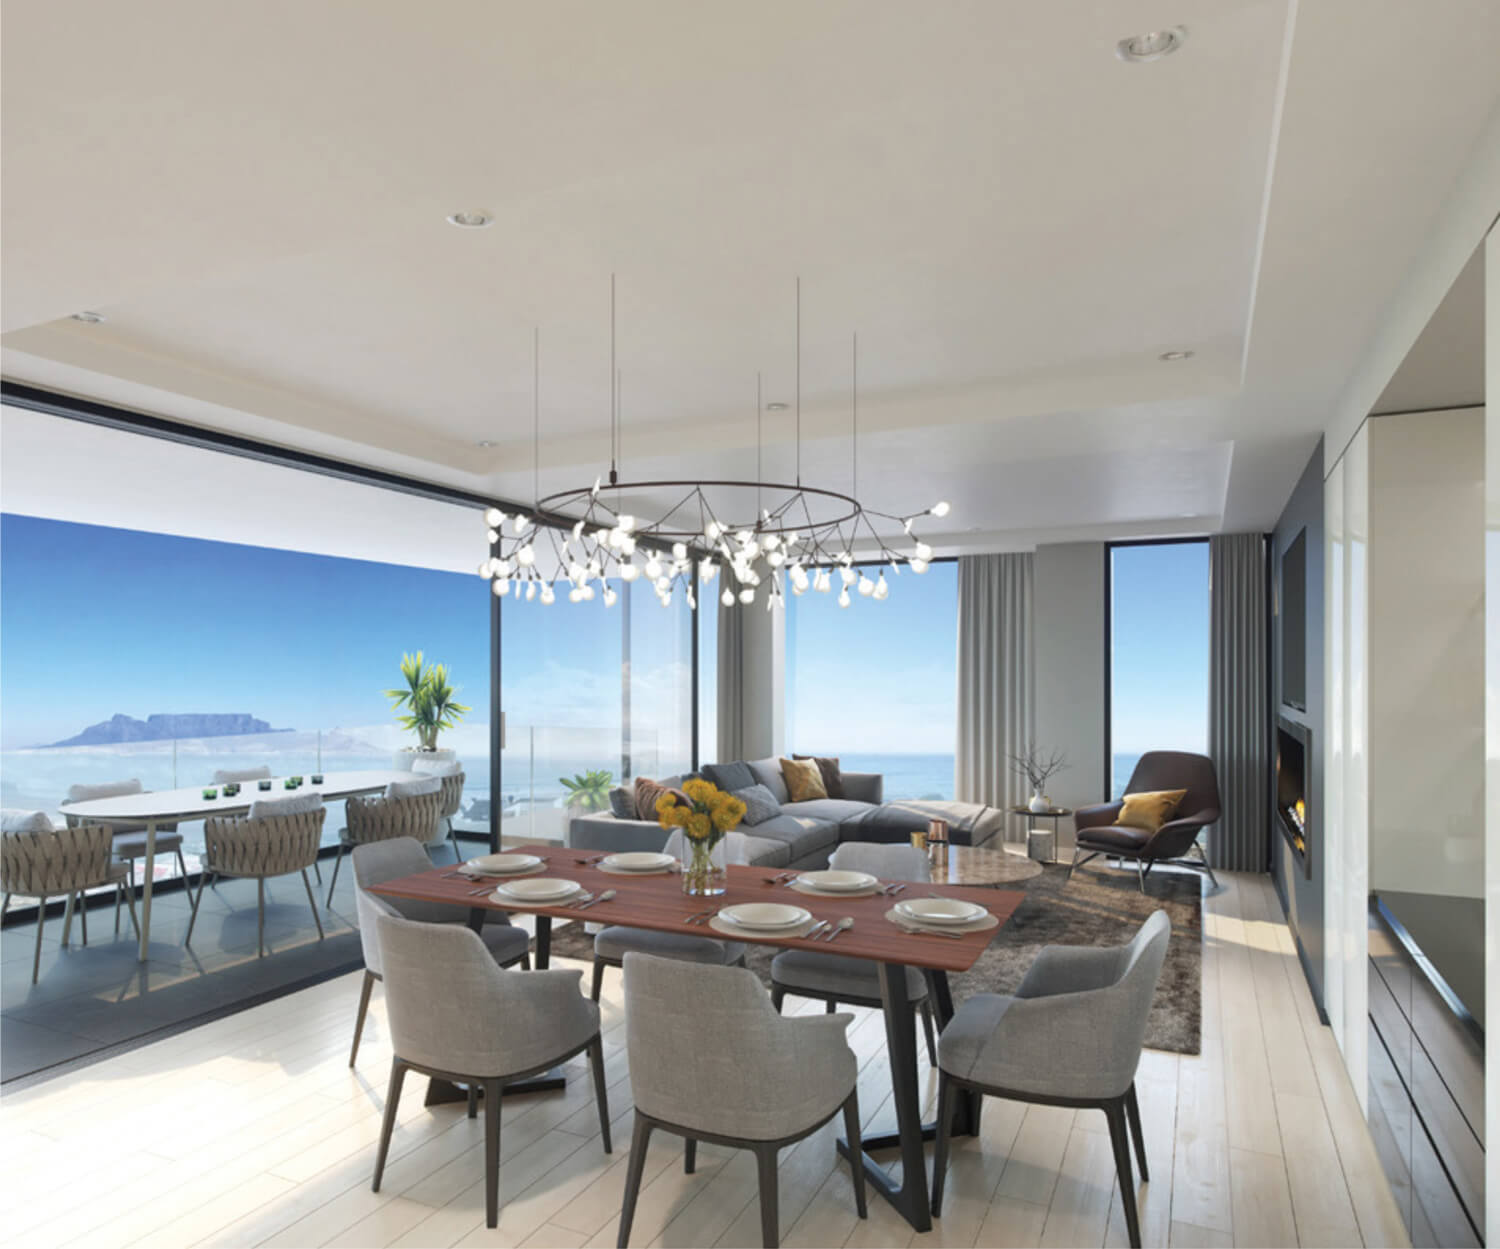 Dining Macaron Blue Residence Investment Opportunities Prodigious